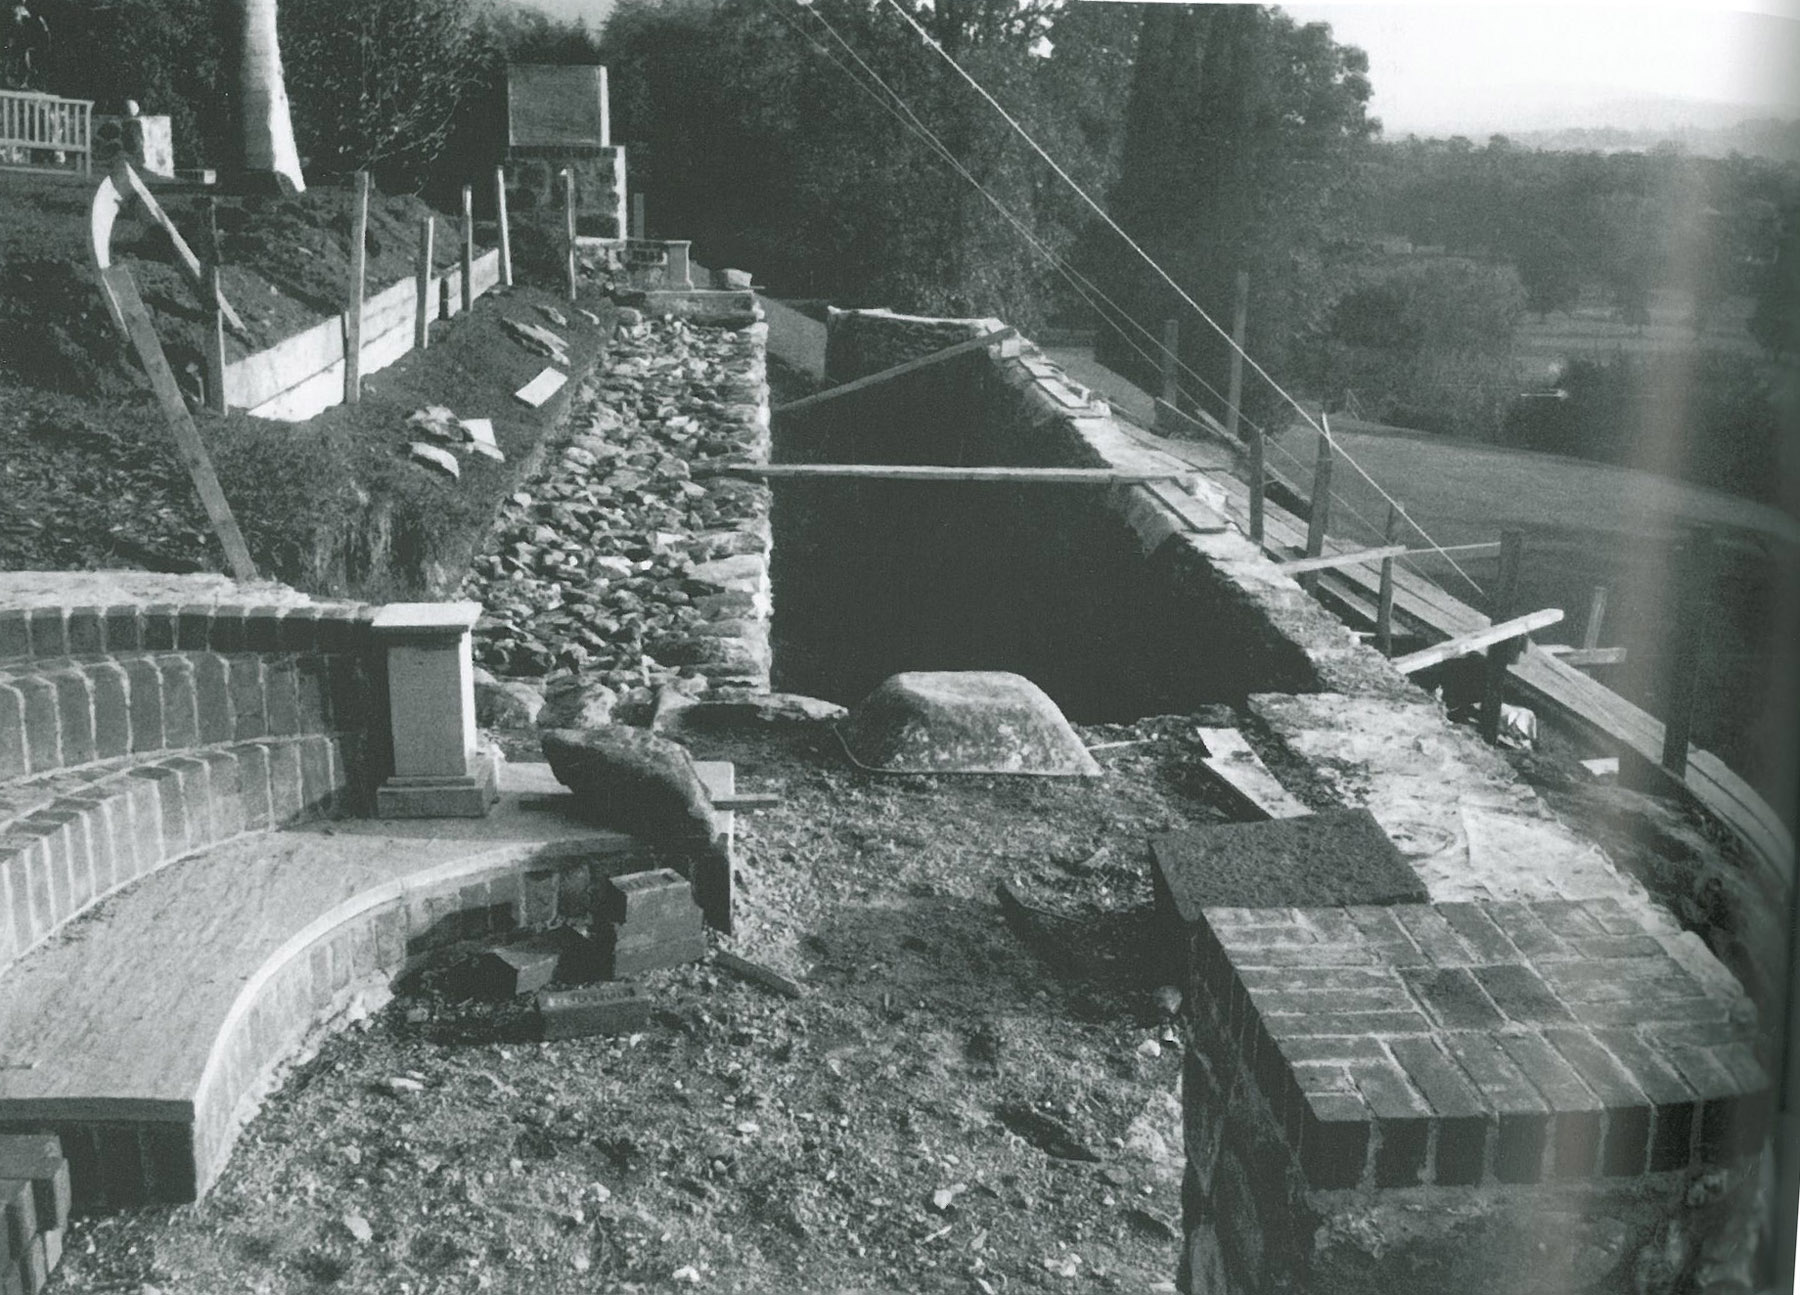 Photo taken as the fieldstone terraces of the Peony Terrace--at the Southwest end of the Top Lawn--were being constructed. Image courtesy of FLETCHER STEELE, LANDSCAPE ARCHITECT, by Robin Karson